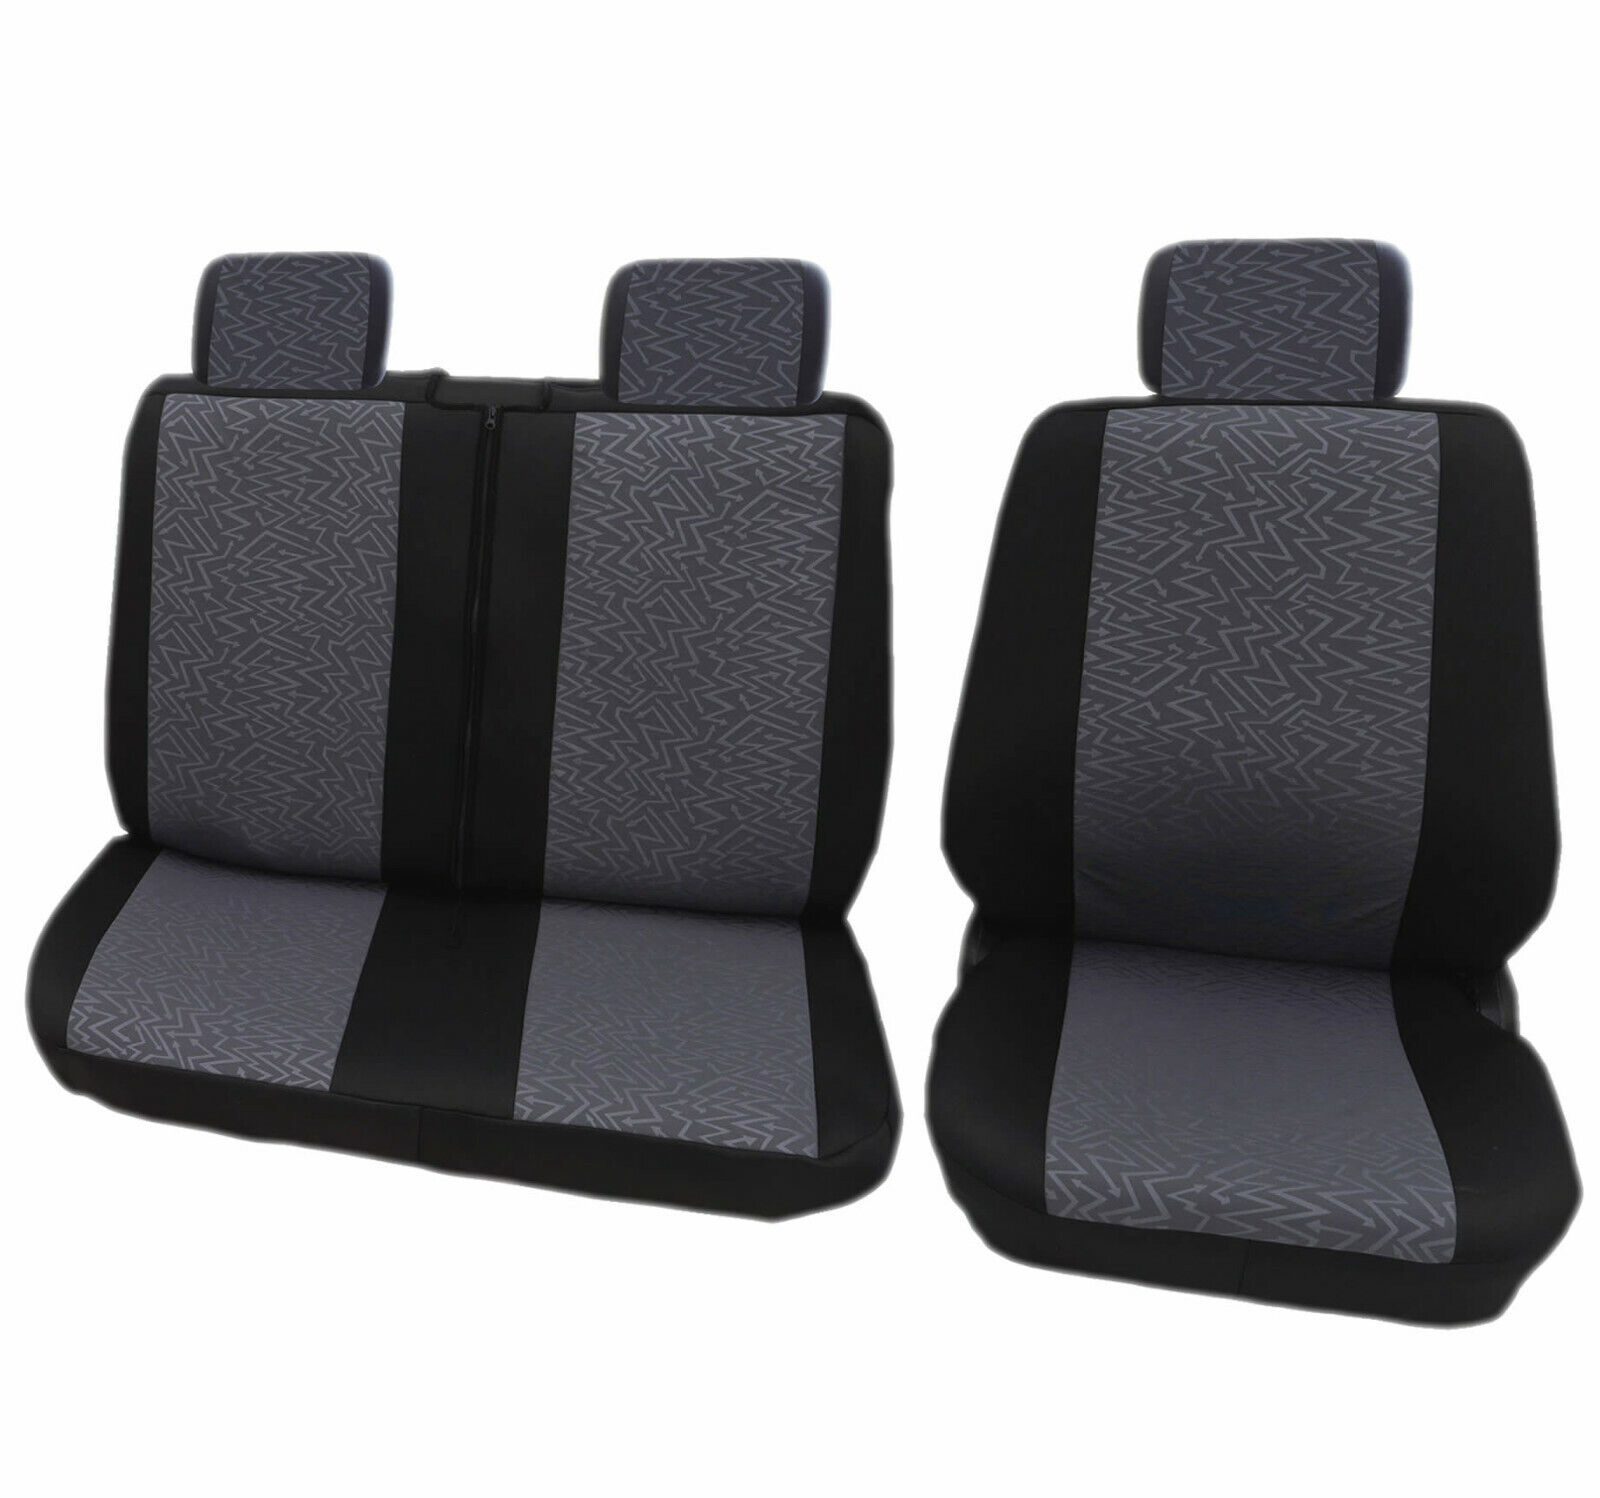 5Pcs Black Grey Comfort Van Seat Covers Universal Heavy Duty Washable Airbag